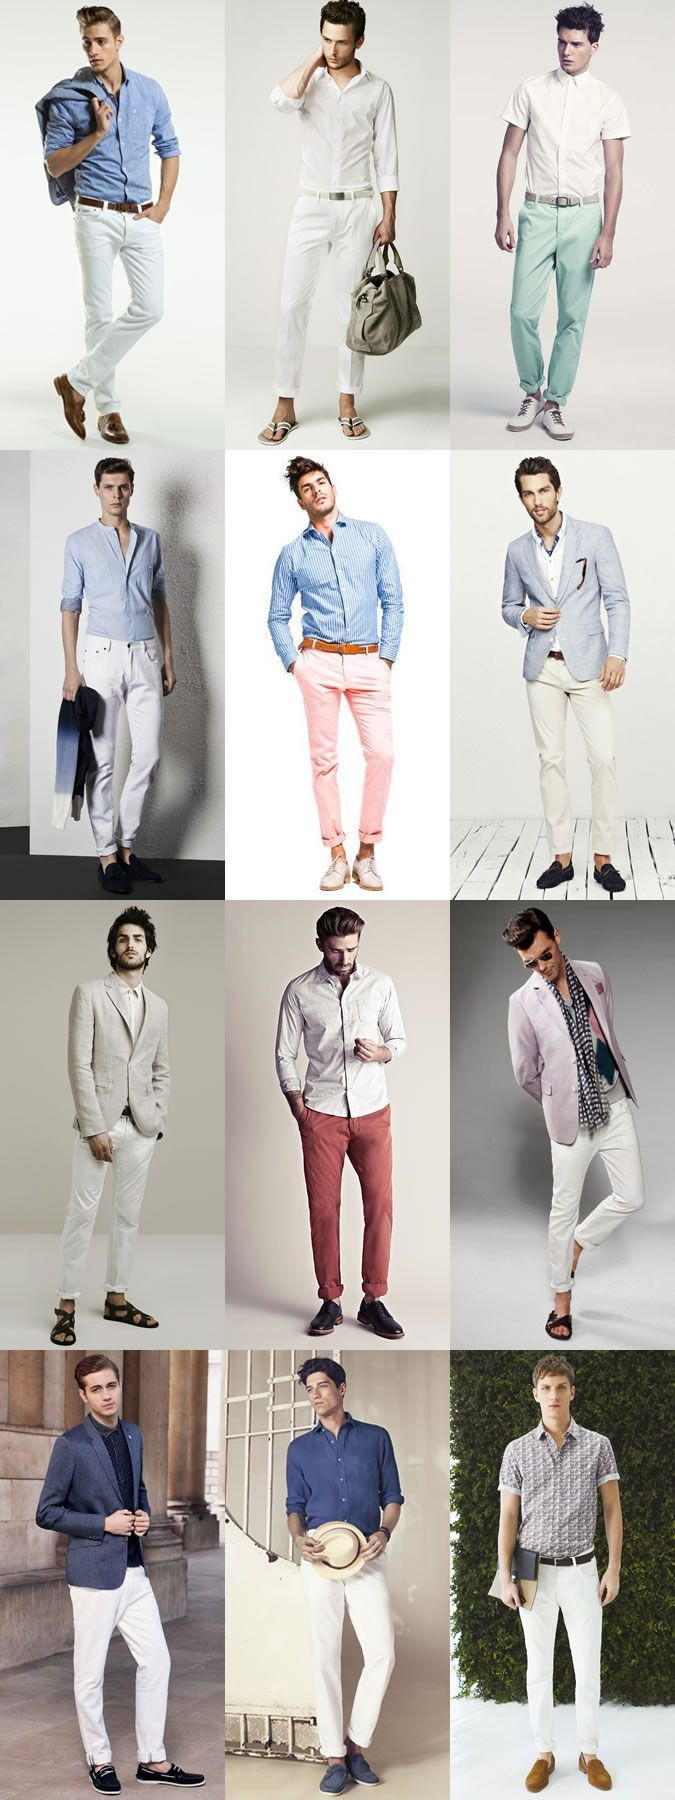 Men's Summer Wedding Guide How To Dress For A Summer